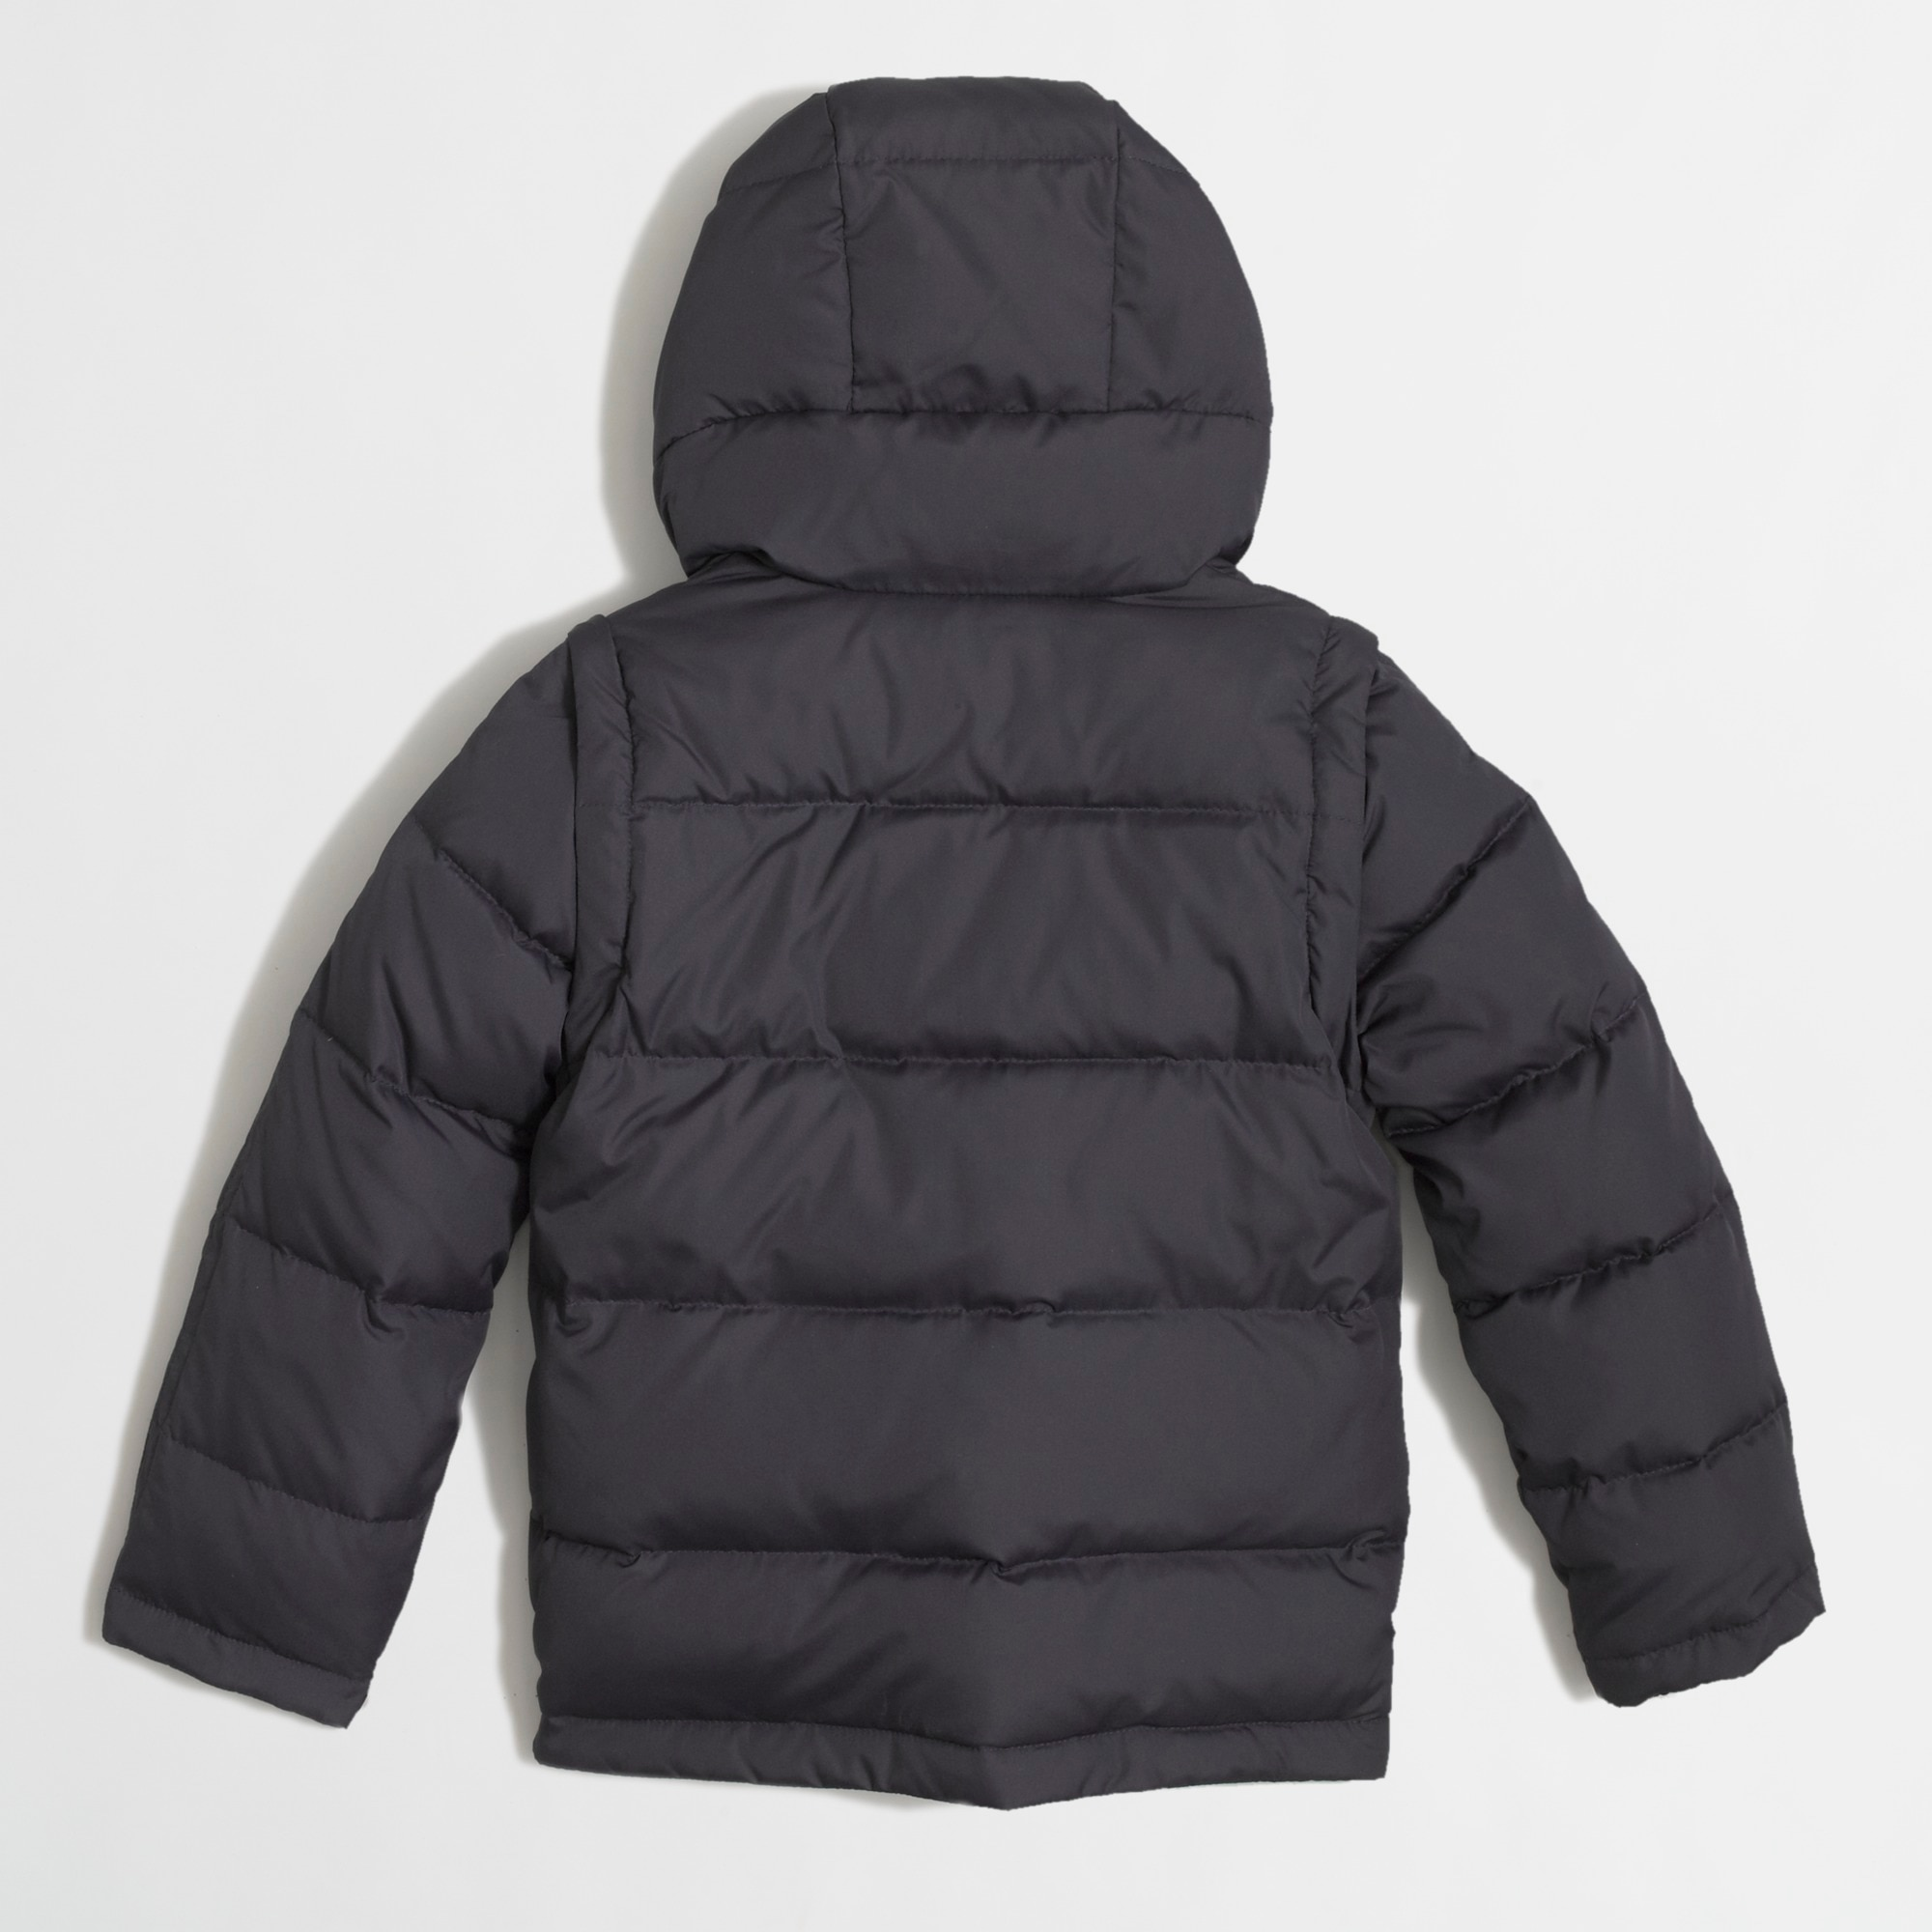 Image 3 for Factory kids' convertible puffer